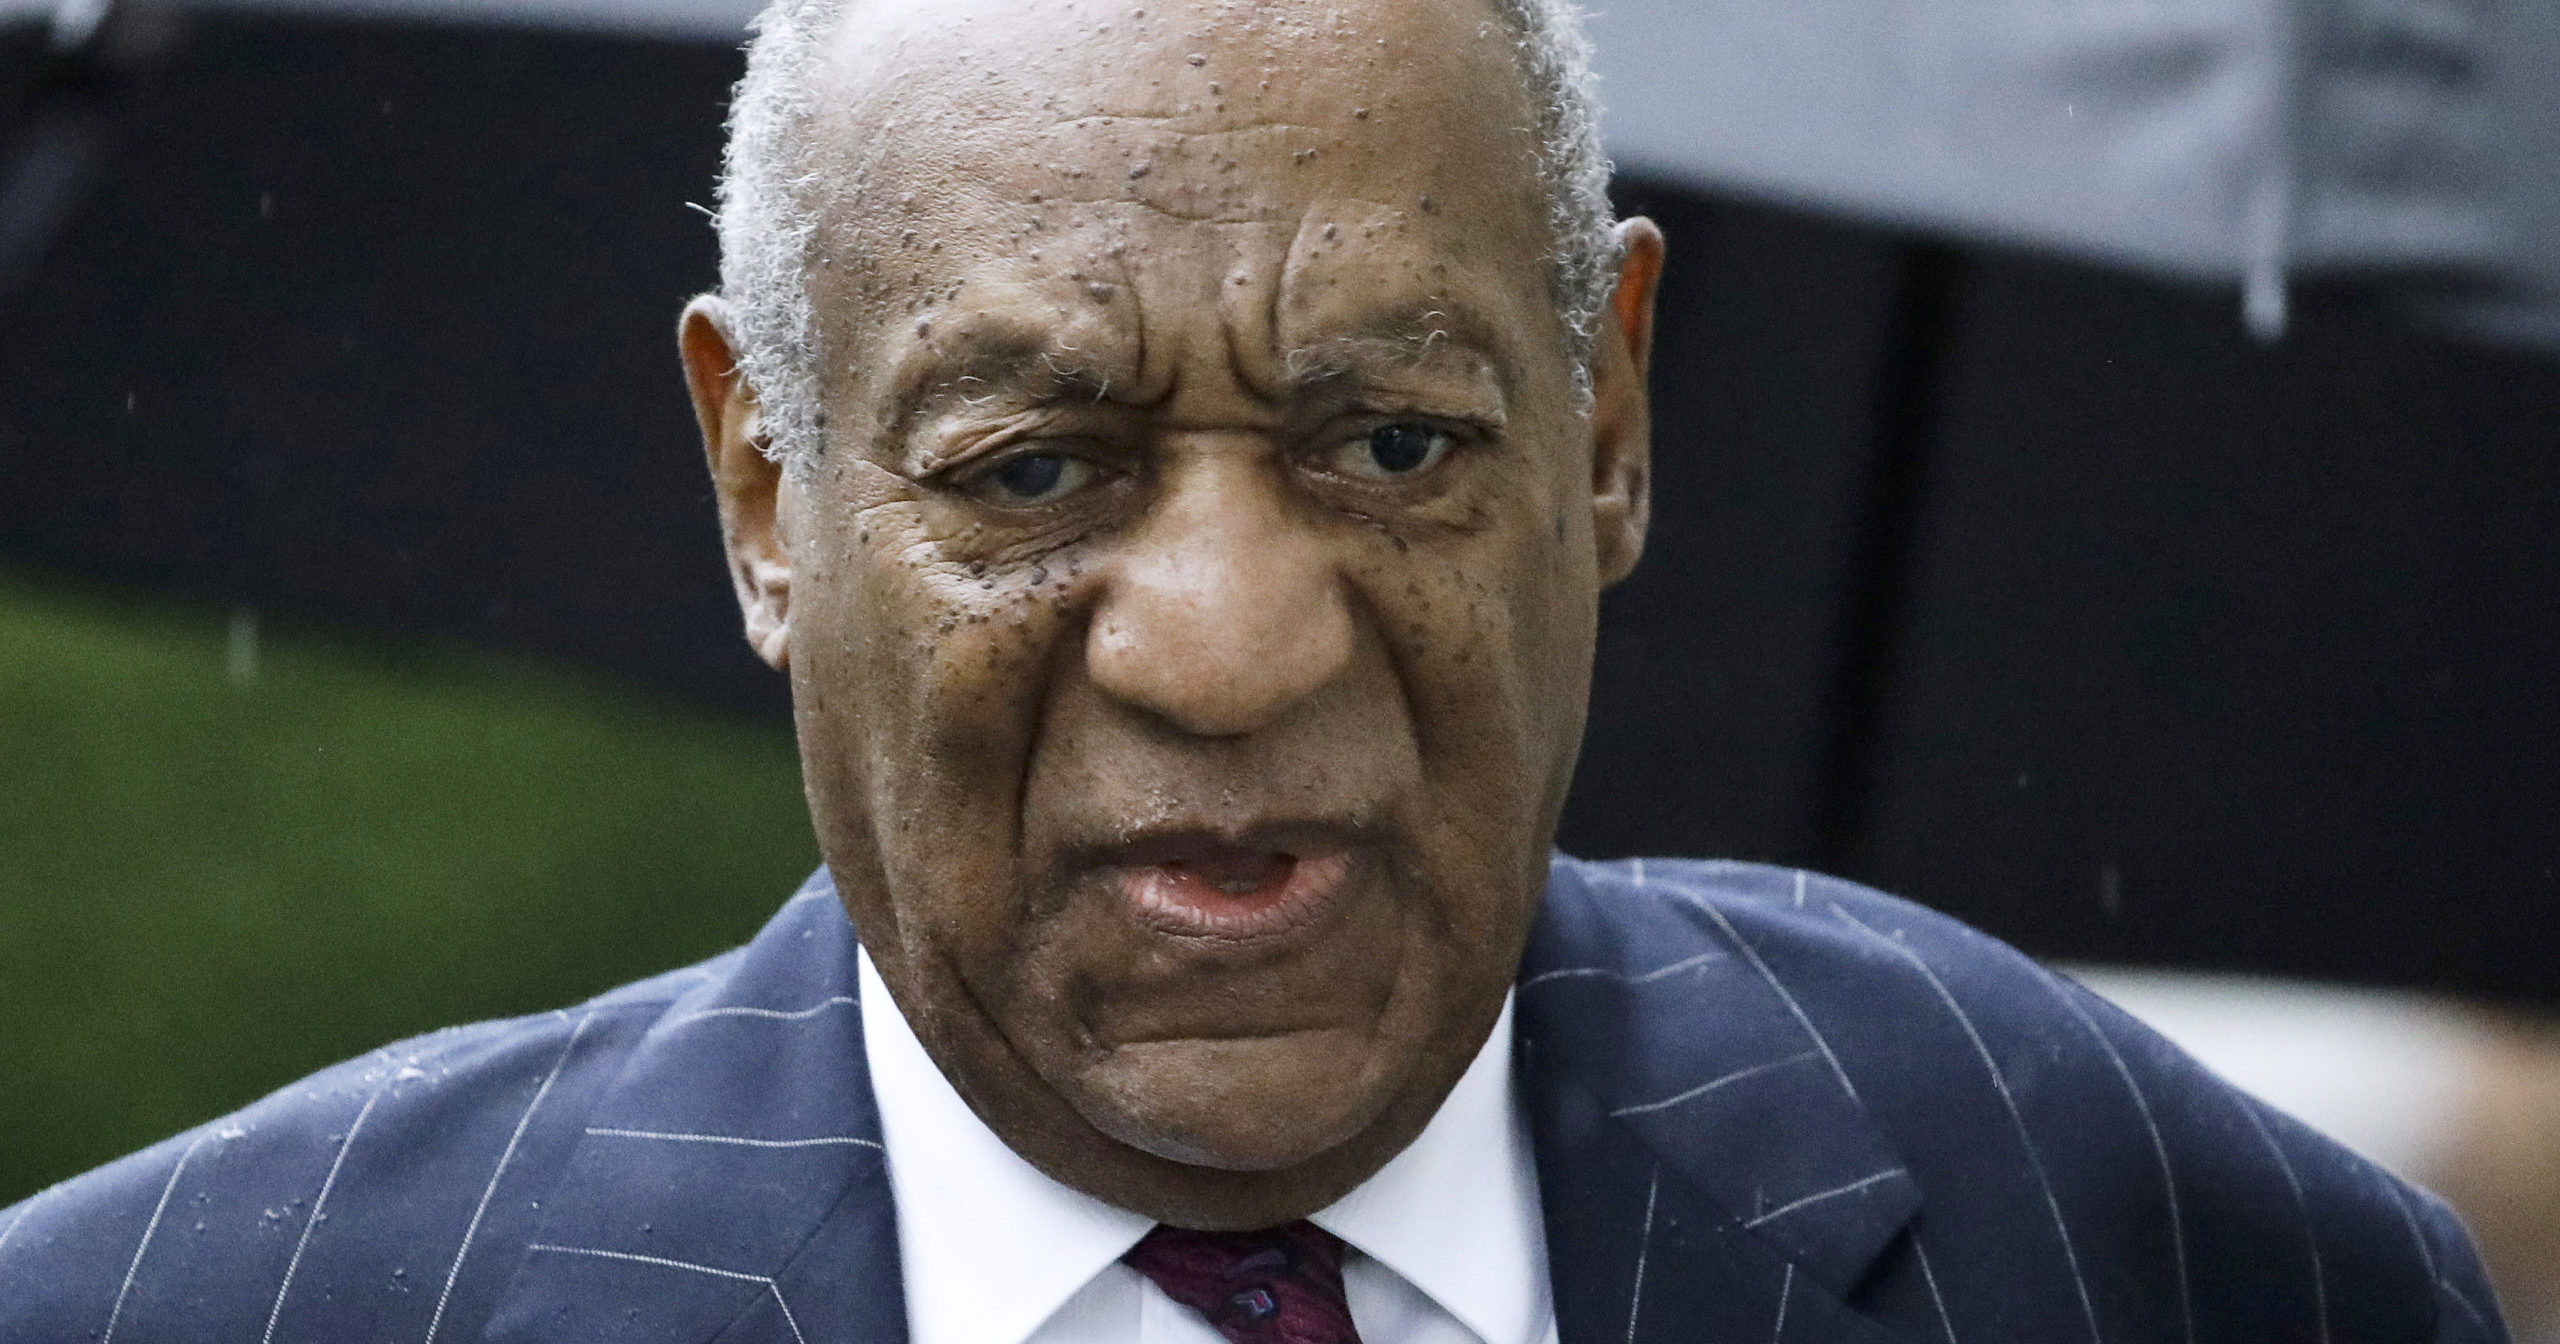 In this Sept. 25, 2018, file photo, Bill Cosby arrives for a sentencing hearing following his sexual assault conviction at the Montgomery County Courthouse in Norristown Pennsylvania. Cosby has won the right to fight his 2018 sexual assault conviction before the Pennsylvania Supreme Court.